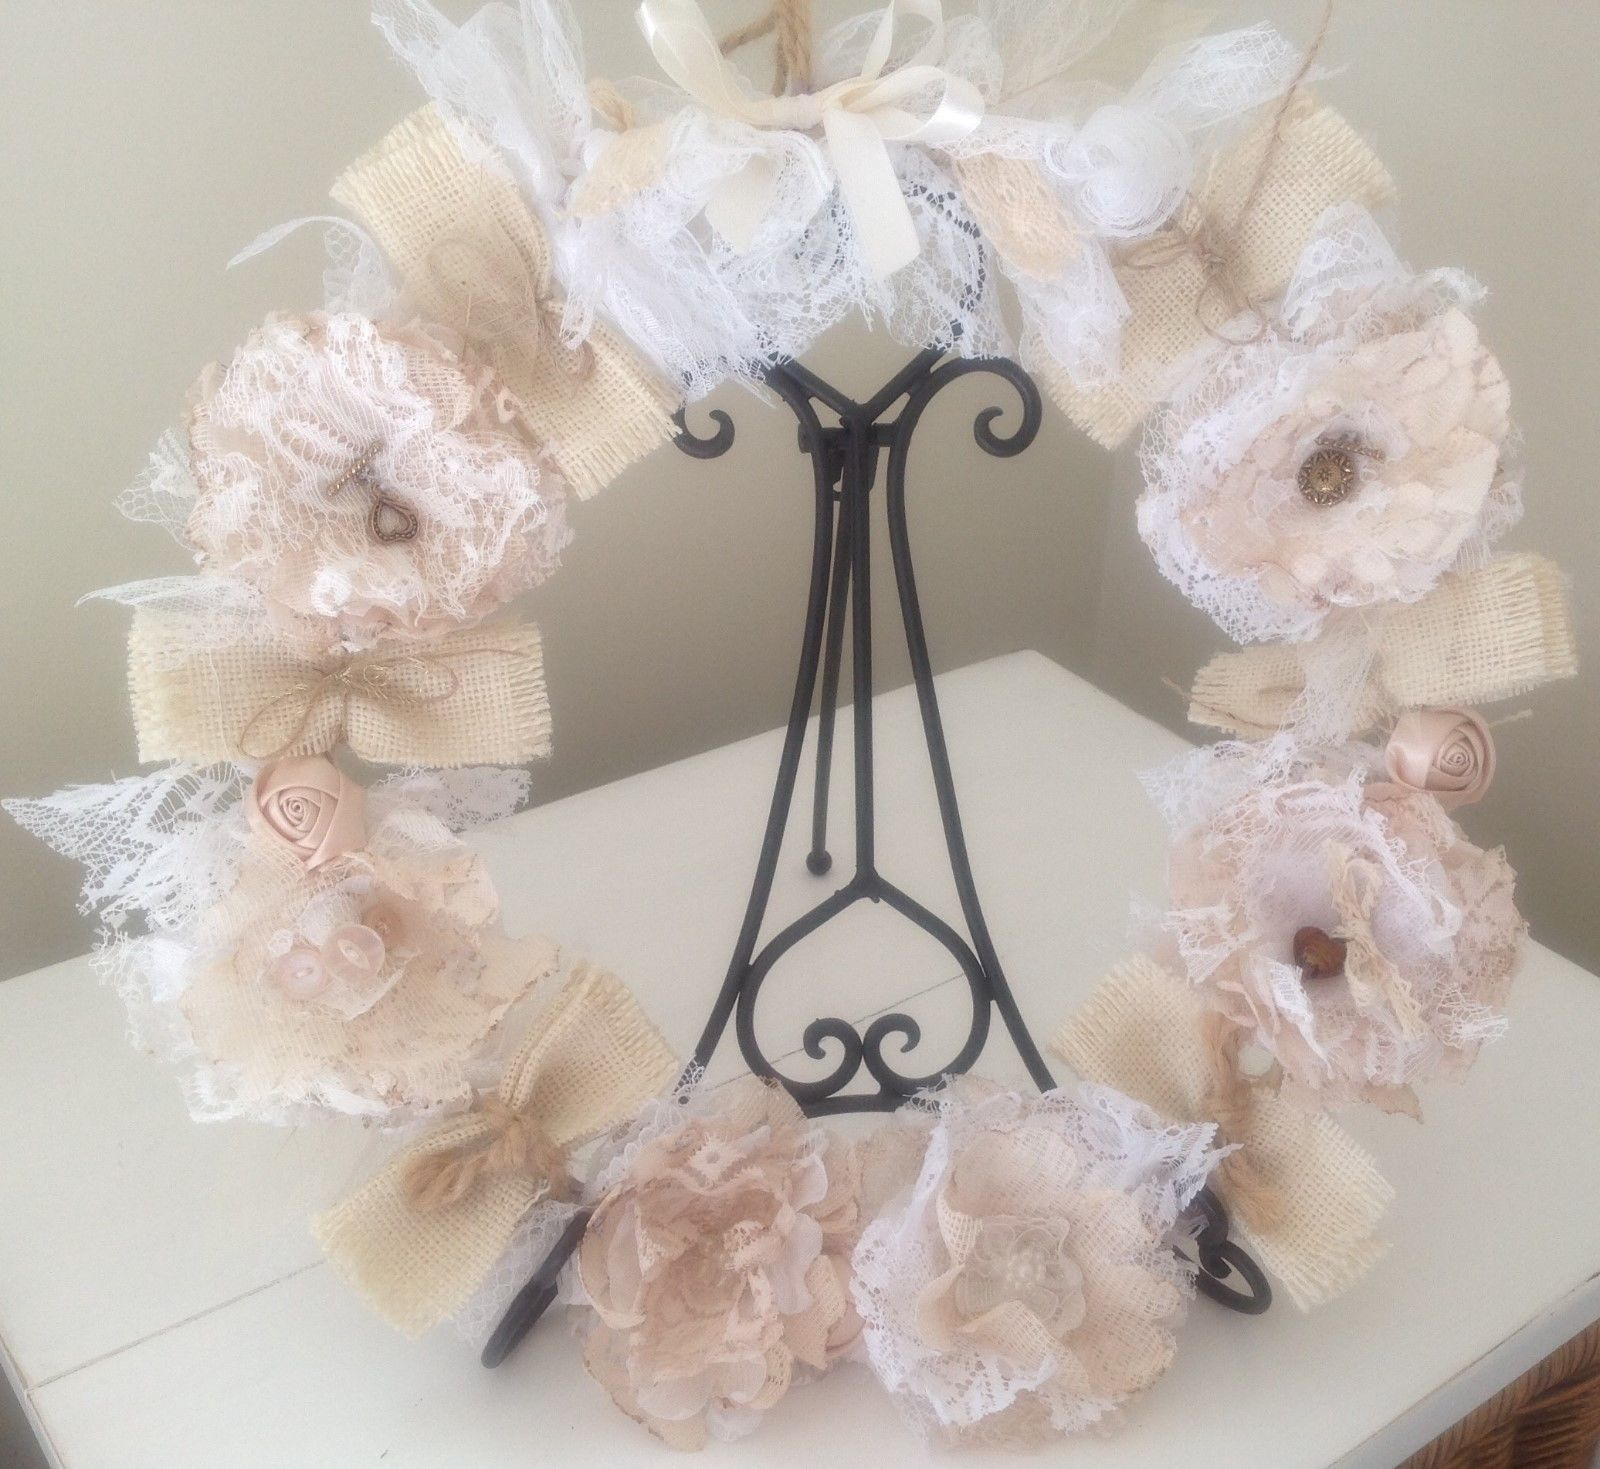 Flower wreath hanging decor vintage lace flowers rustic shabby chic in Home & Garden, Home Décor, Flowers, Floral Décor | eBay